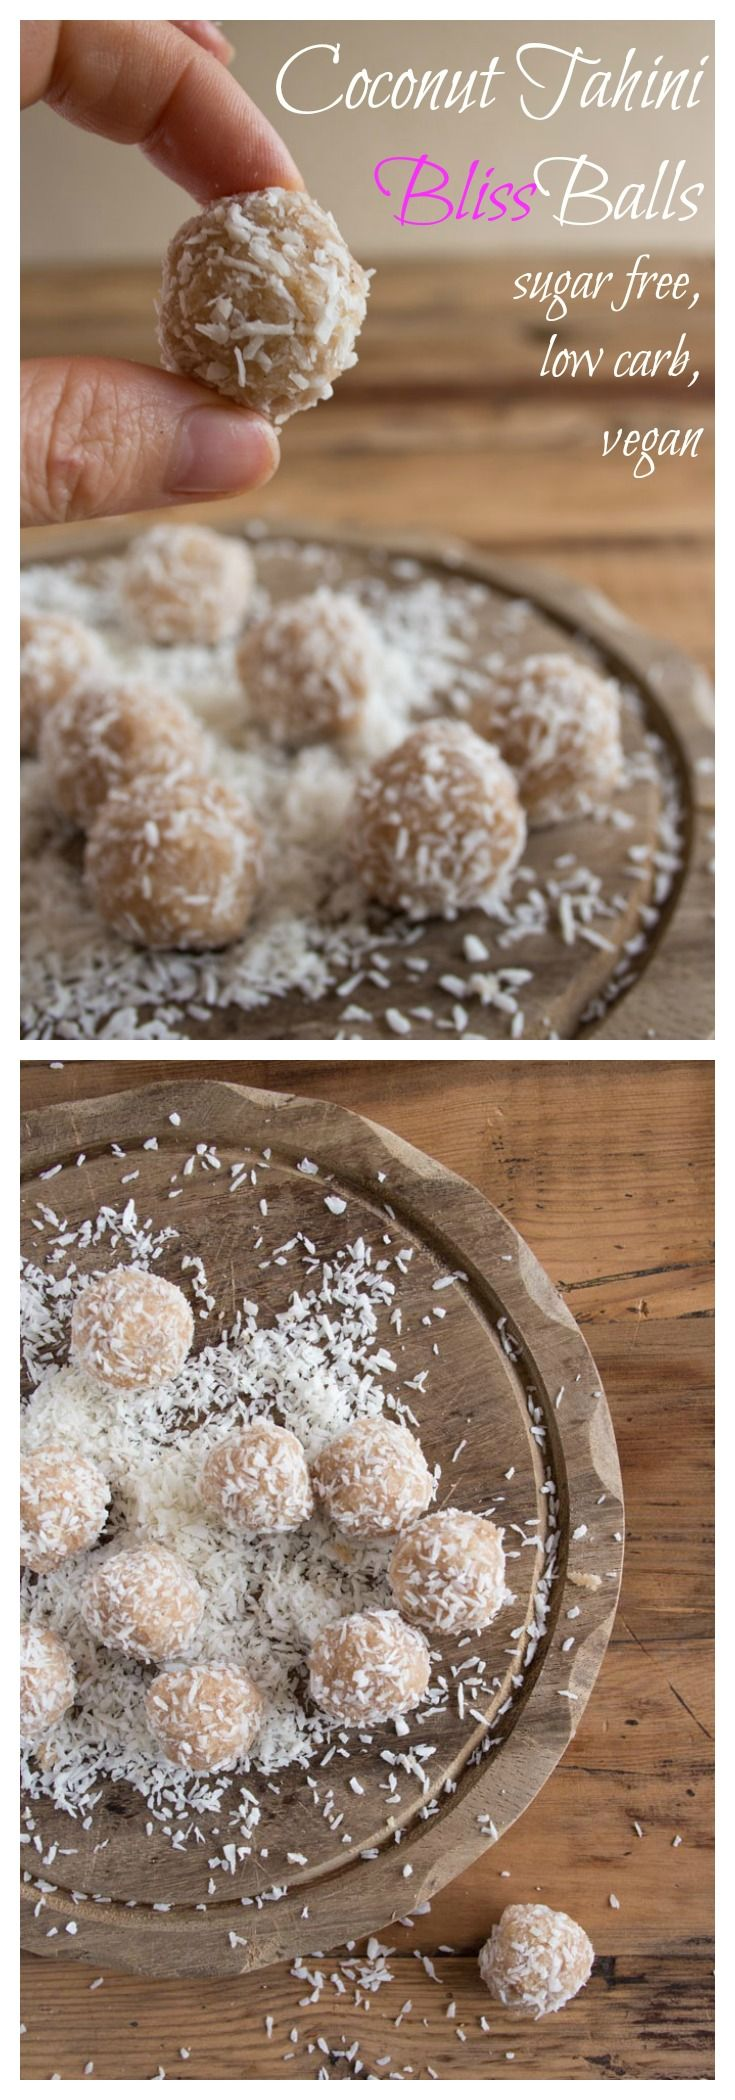 Soft, satisfying and subtly spiced: These sugar free Coconut Tahini Bliss Balls are bite-sized portions of...bliss.